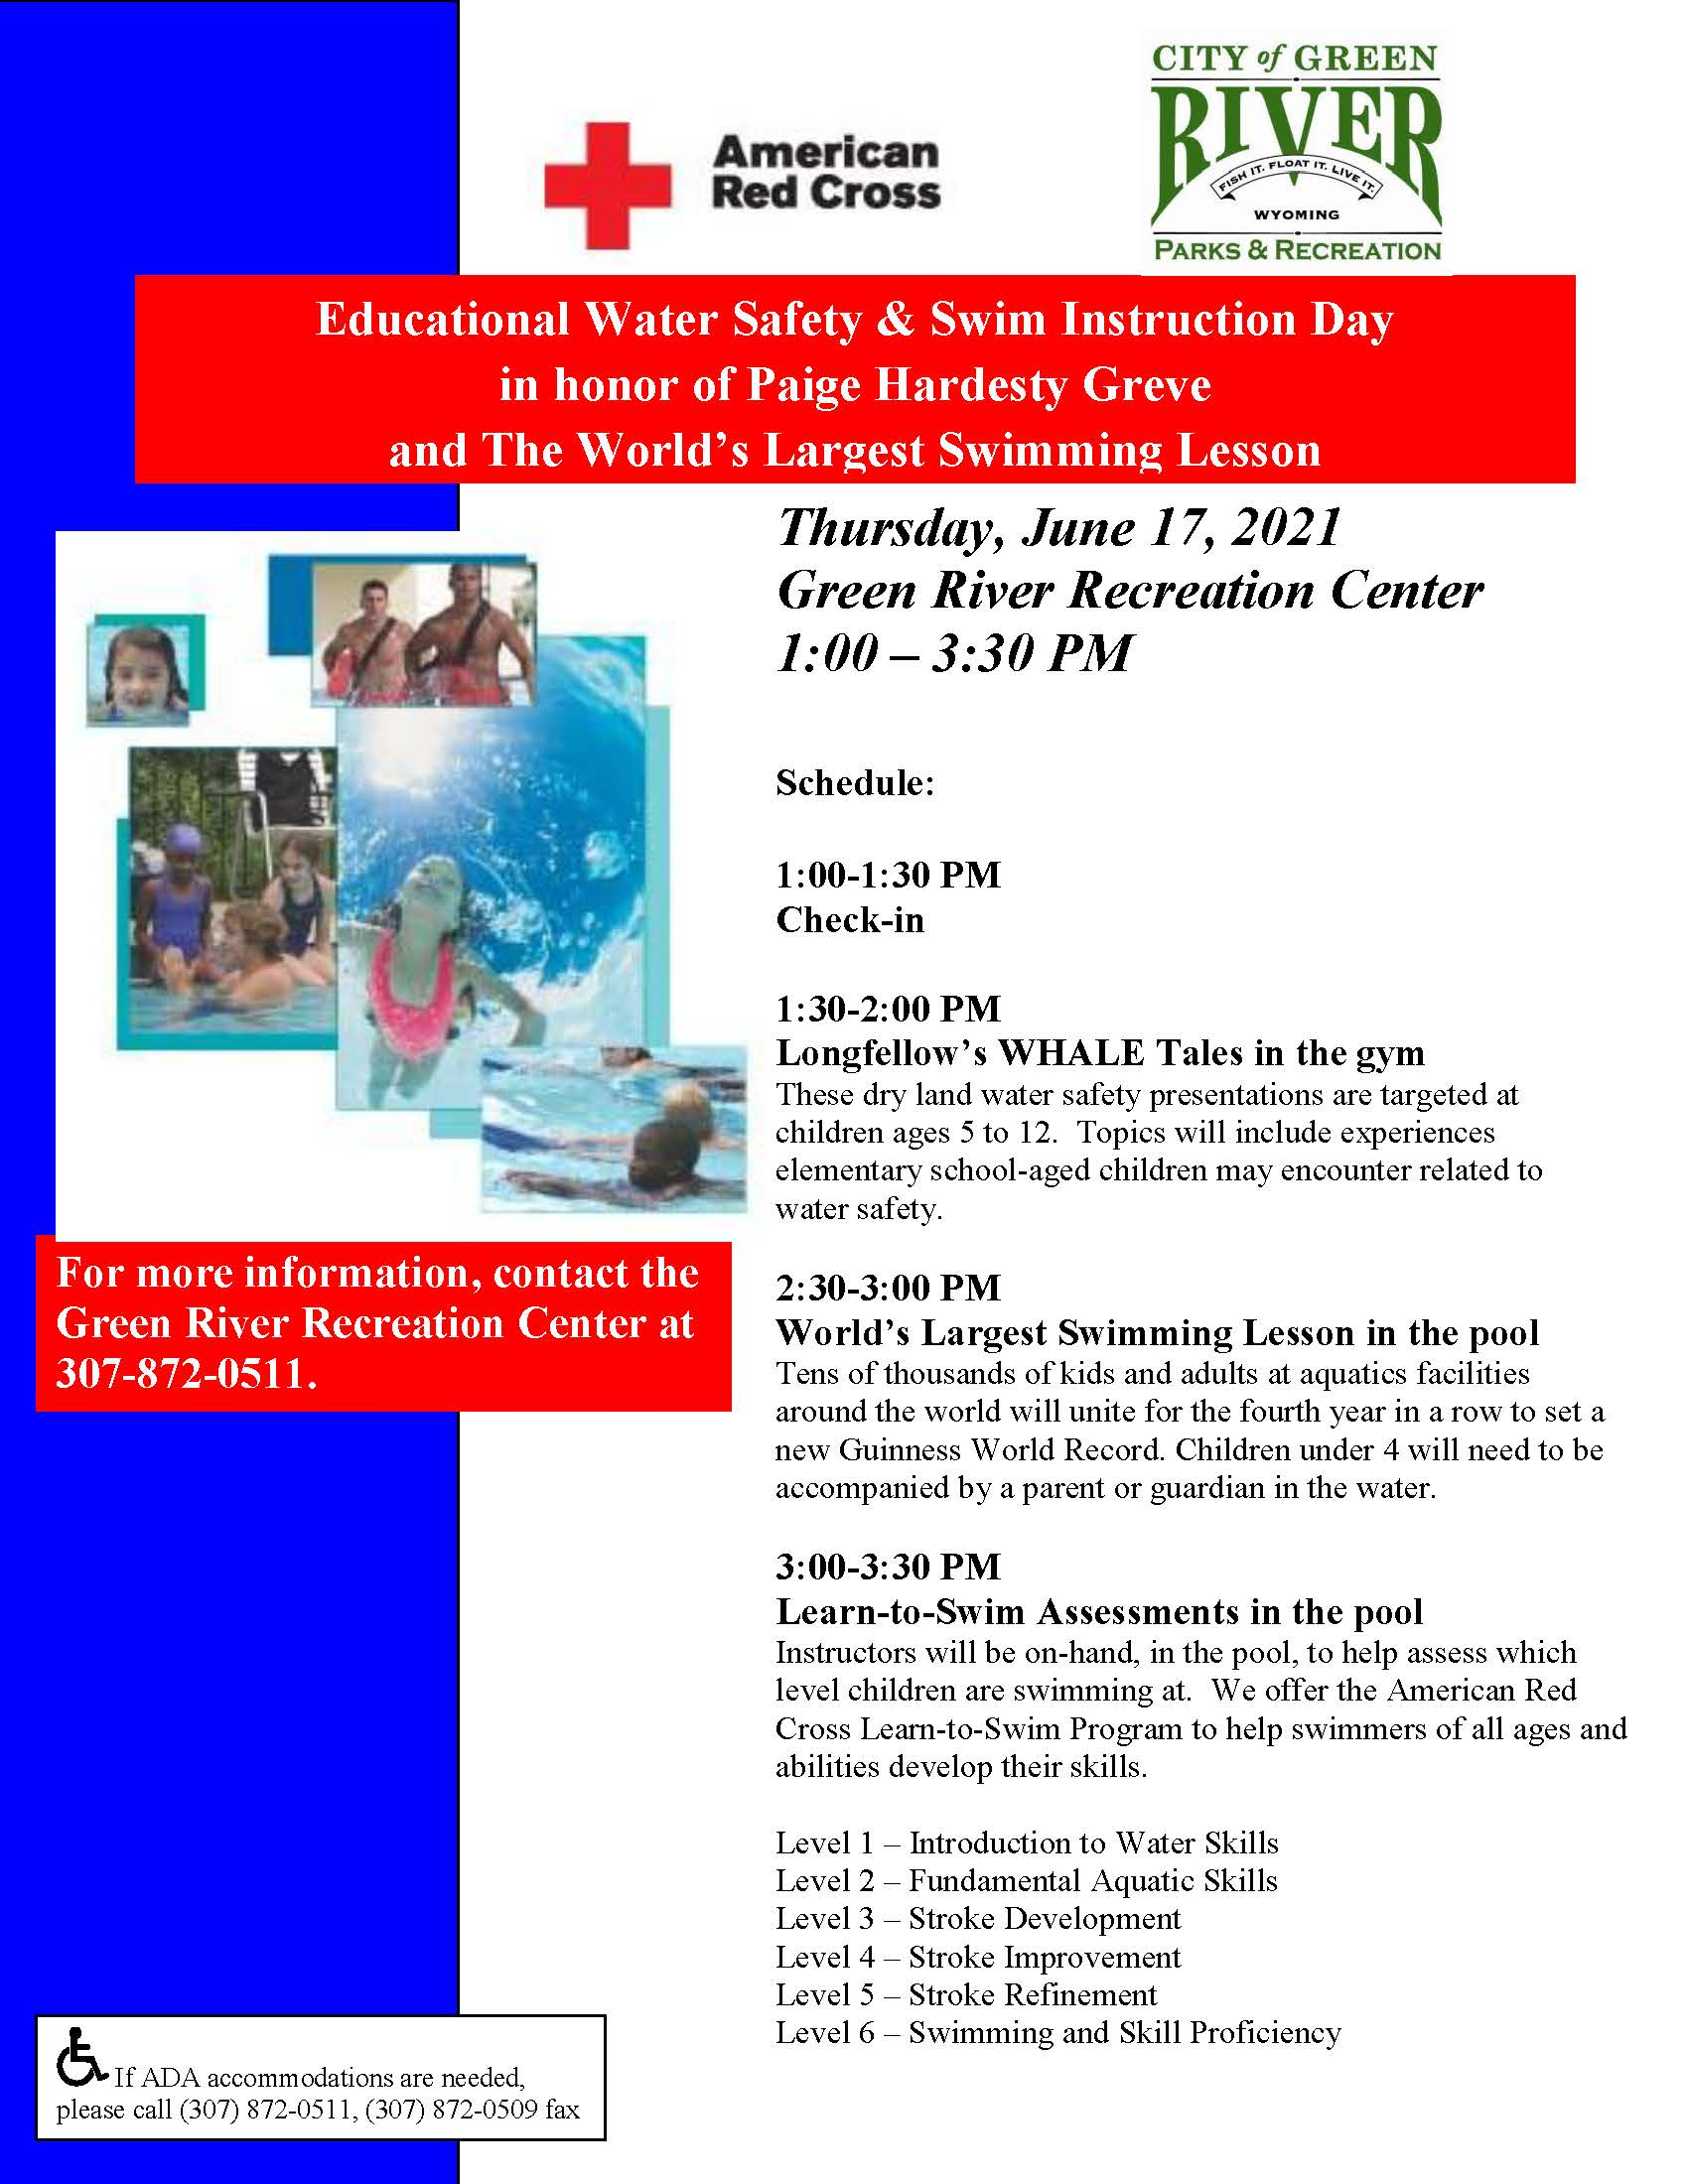 Water Safety Day.Largest Swim Lesson flier 6.17.2021